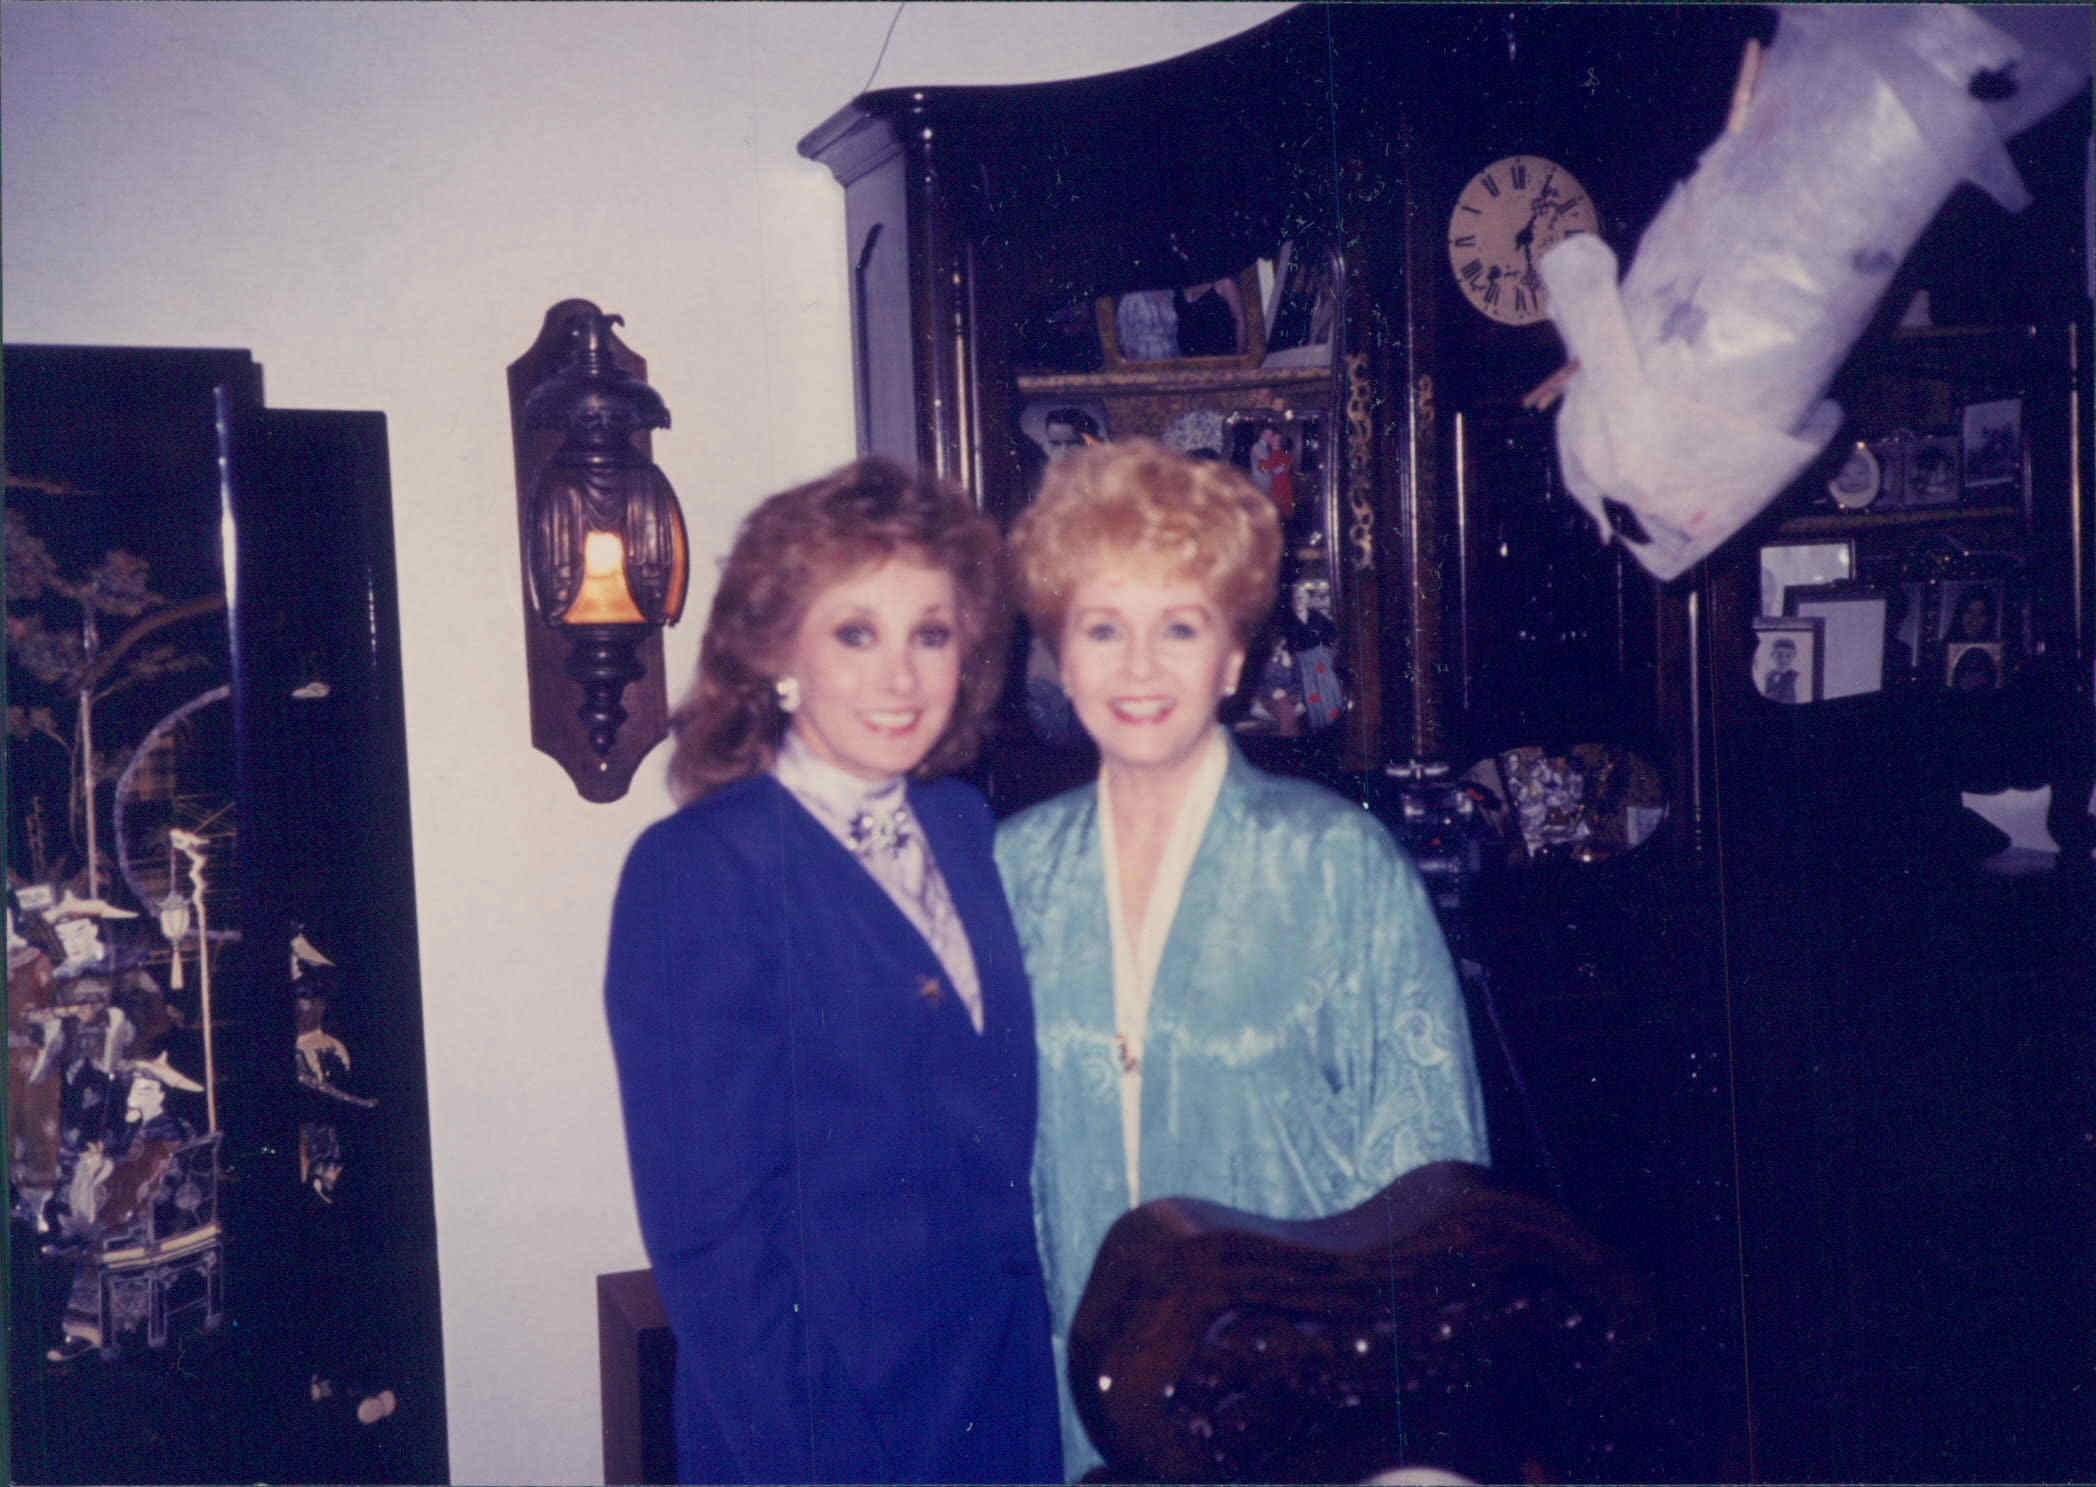 Jeanne with Debbie Reynolds